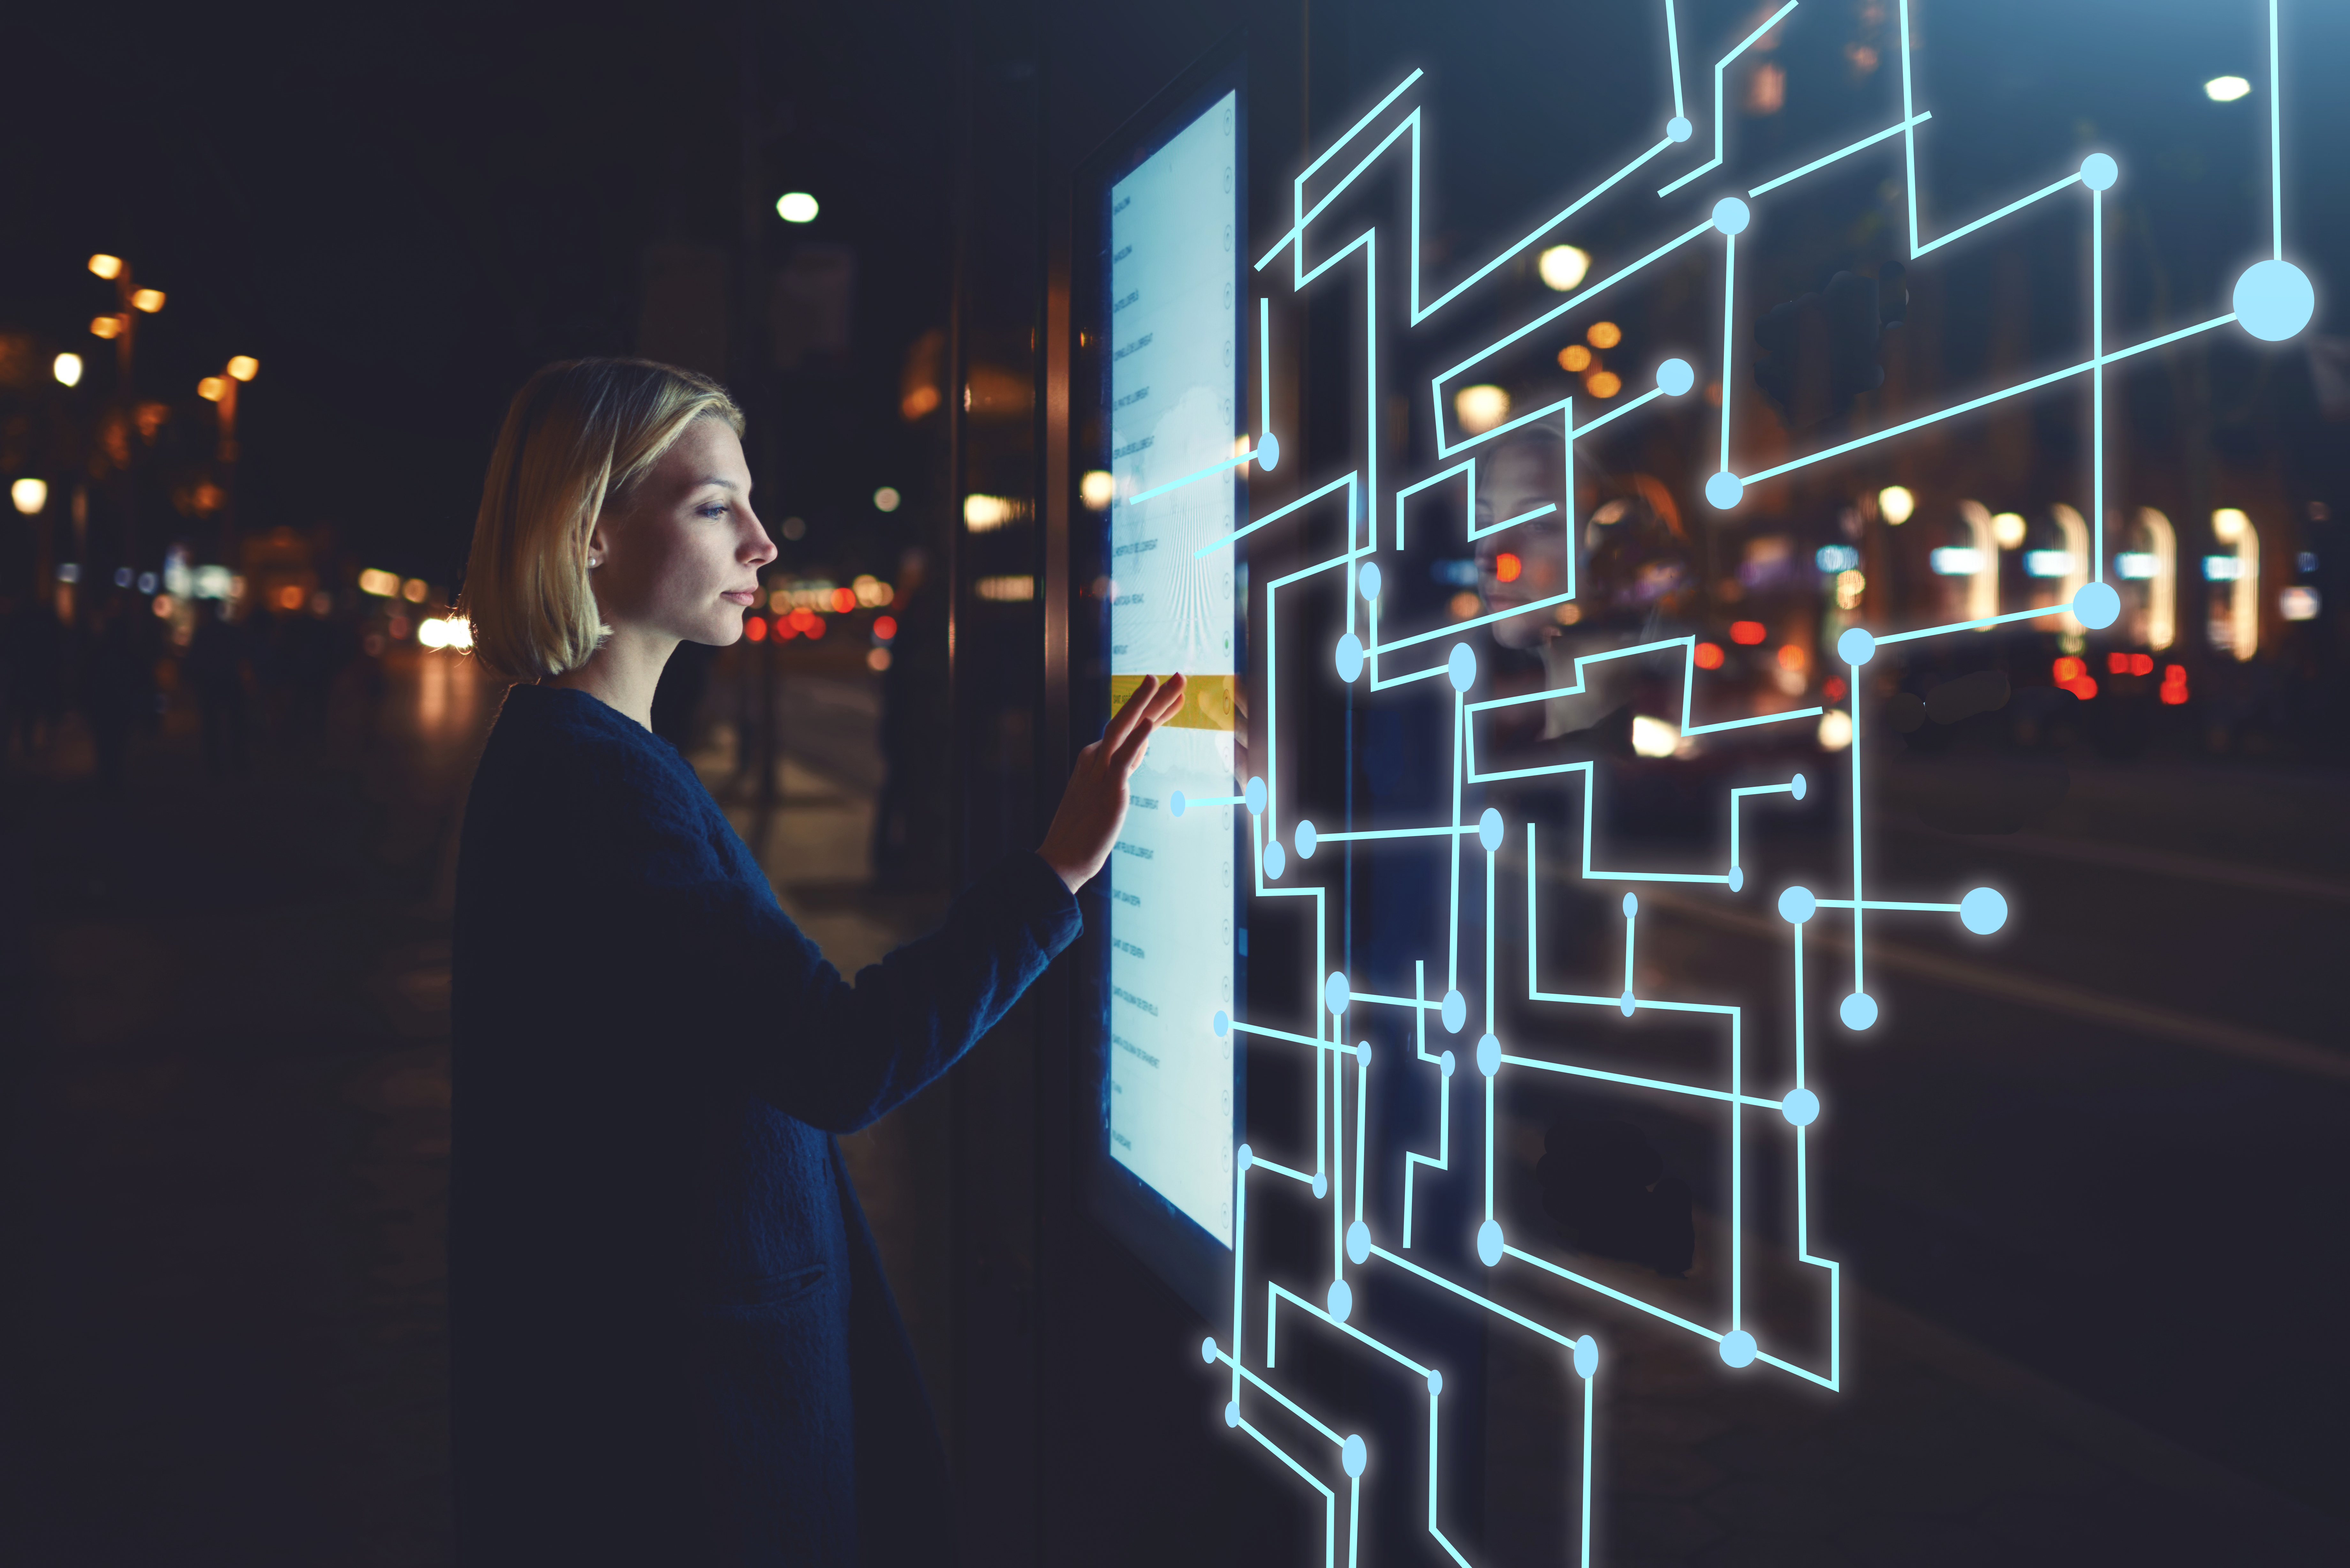 Woman with blonde bob in navy cardigan outdoors at night time scrolling through virtual touch screen